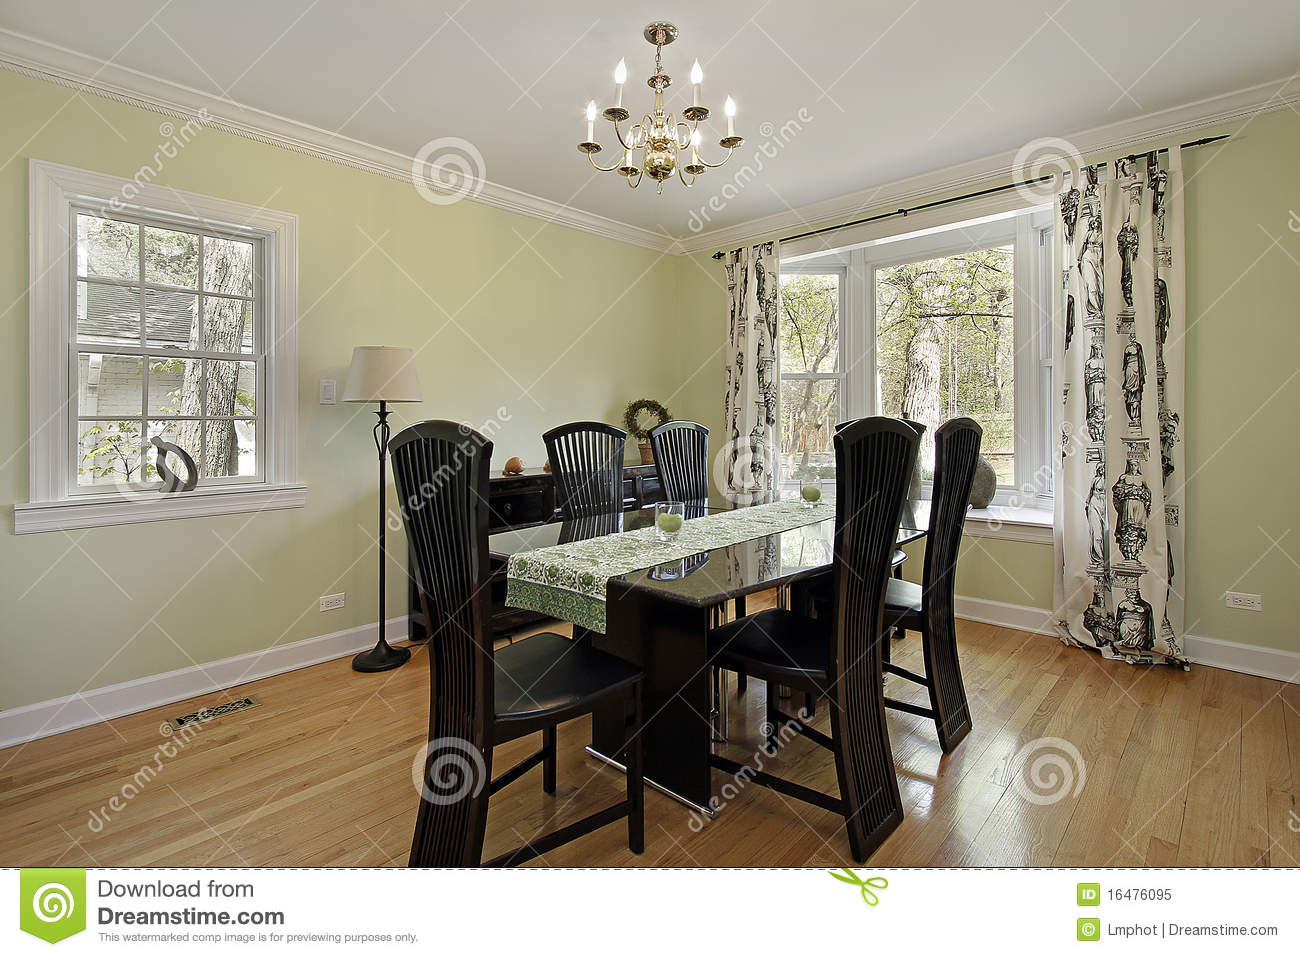 Dining Room With Light Green Walls Royalty Free Stock  : dining room light green walls 16476095 from www.dreamstime.com size 1300 x 957 jpeg 185kB